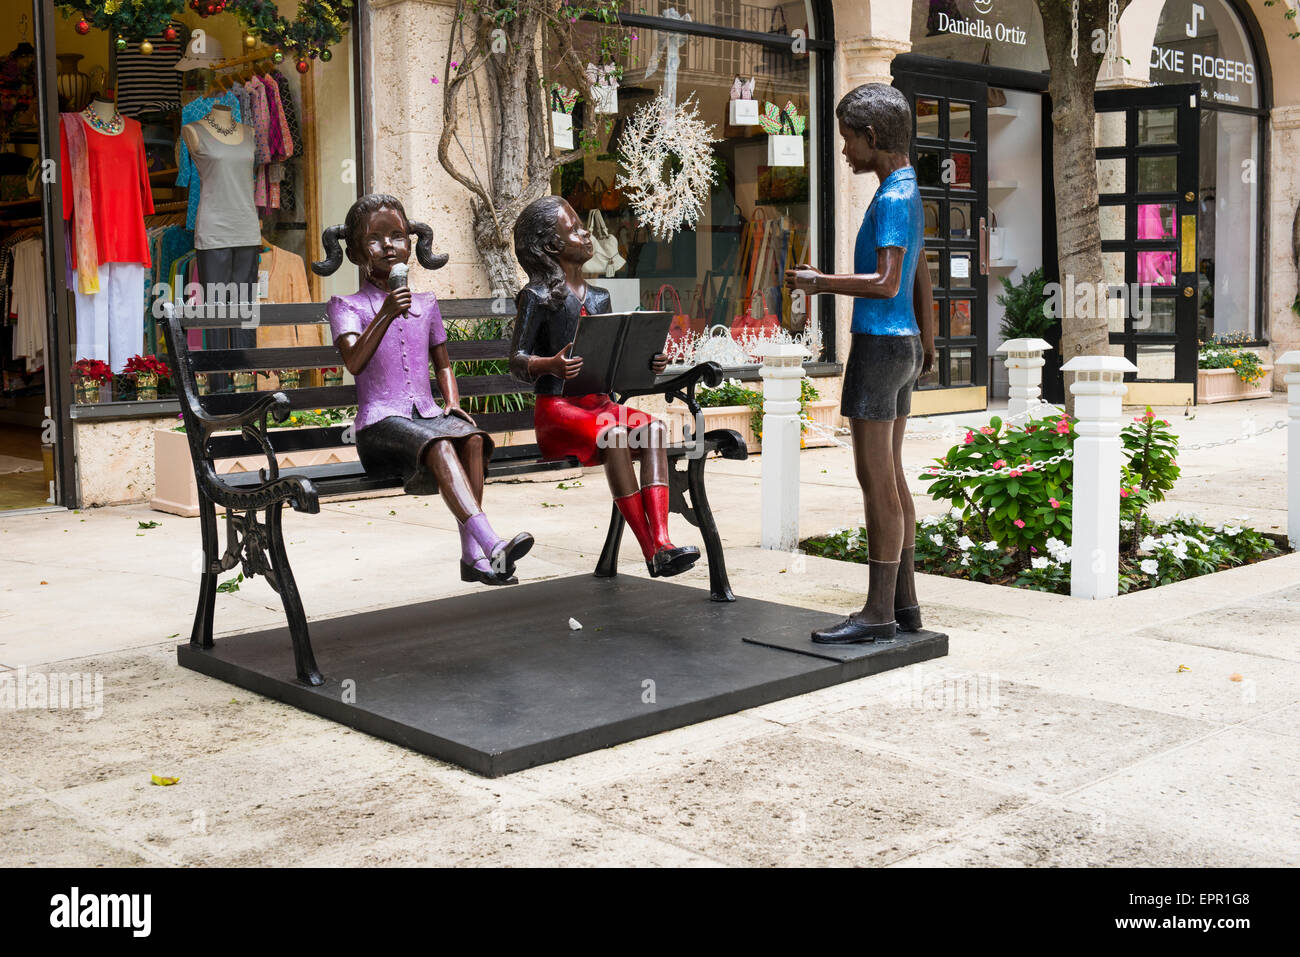 Florida Palm Beach Worth Avenue art work child children figures artist Prince Monyo of Romania statues sculptures Stock Photo